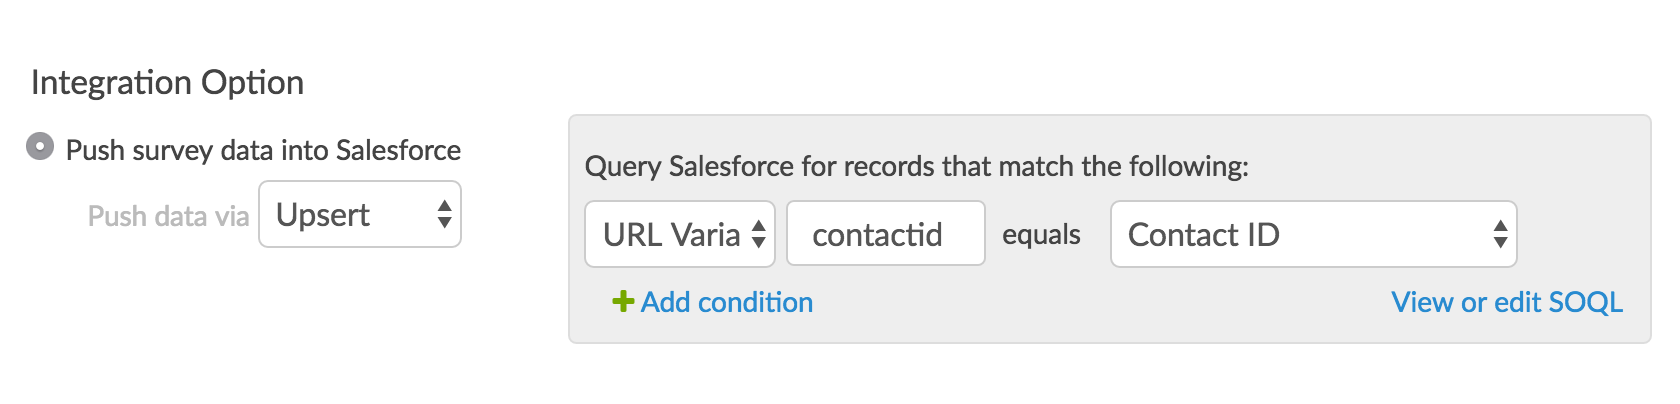 Identify the survey field that contains the unique Salesforce ID